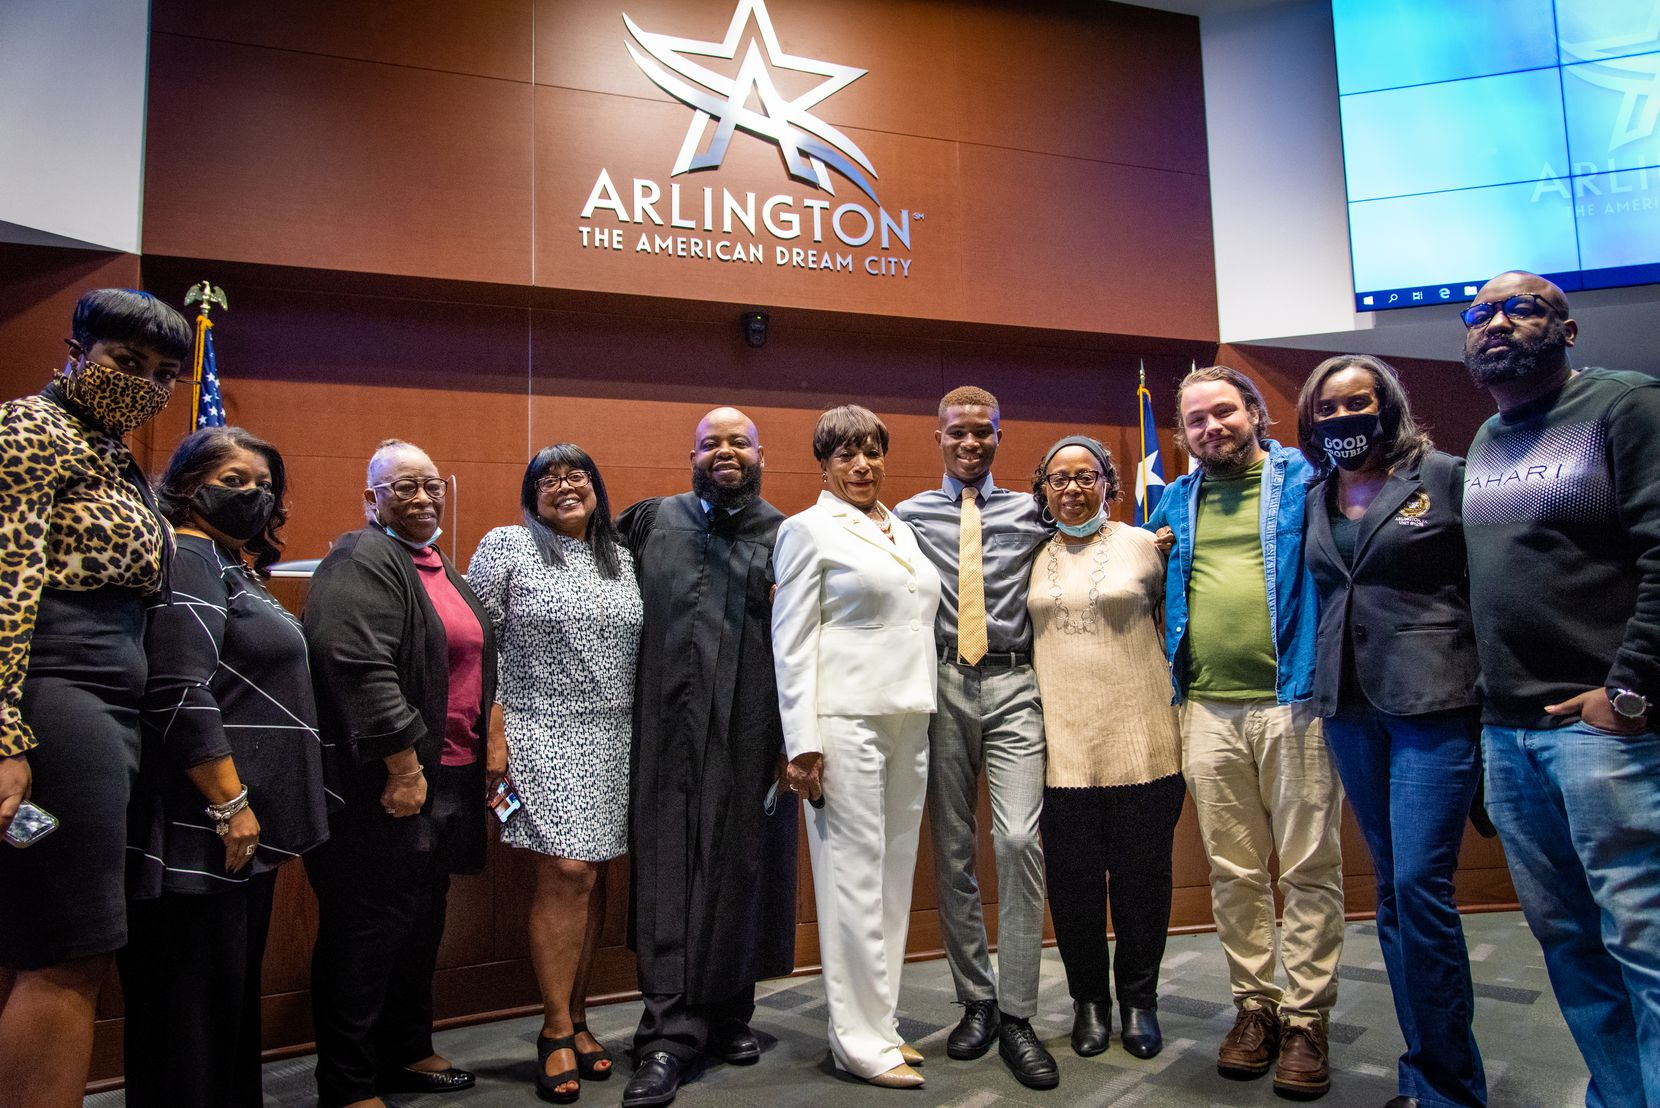 Ruby Faye Woolridge, Arlington City Council District 6 member, and Stefan Powdrill, Sam Houston High School student, attended her swearing-in ceremony with other members of the campaign.